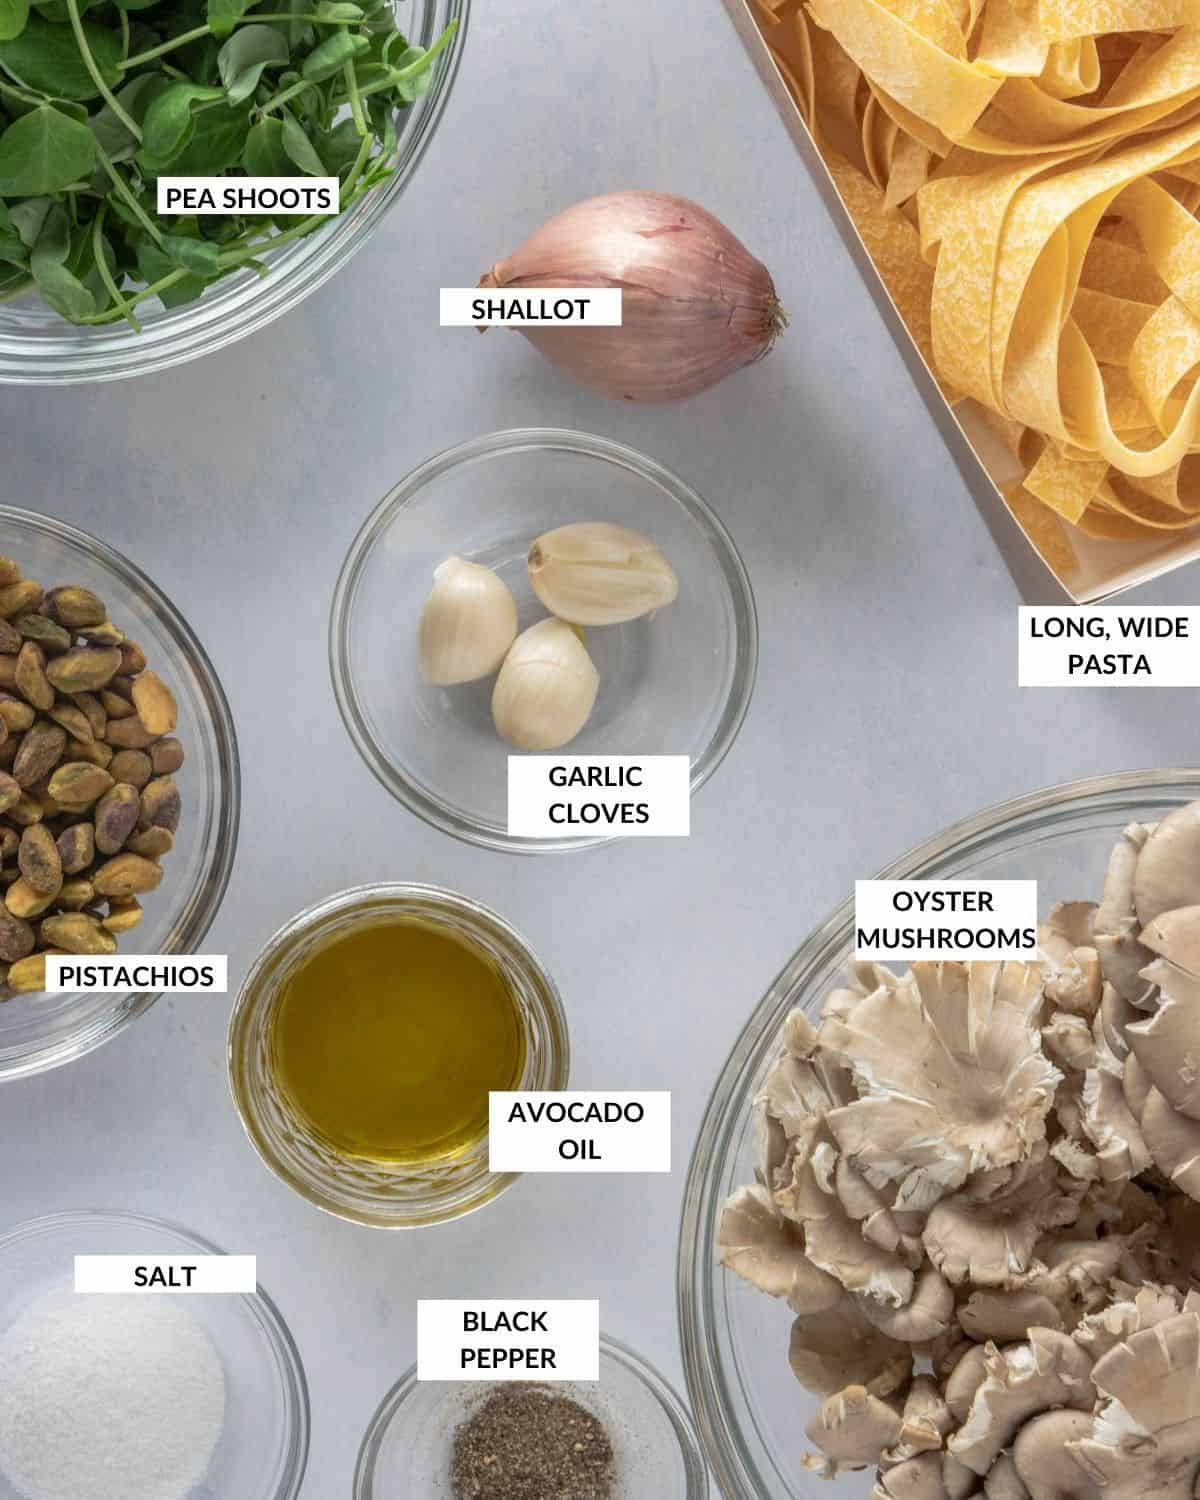 Labeled ingredient list for pasta - check recipe card for details!